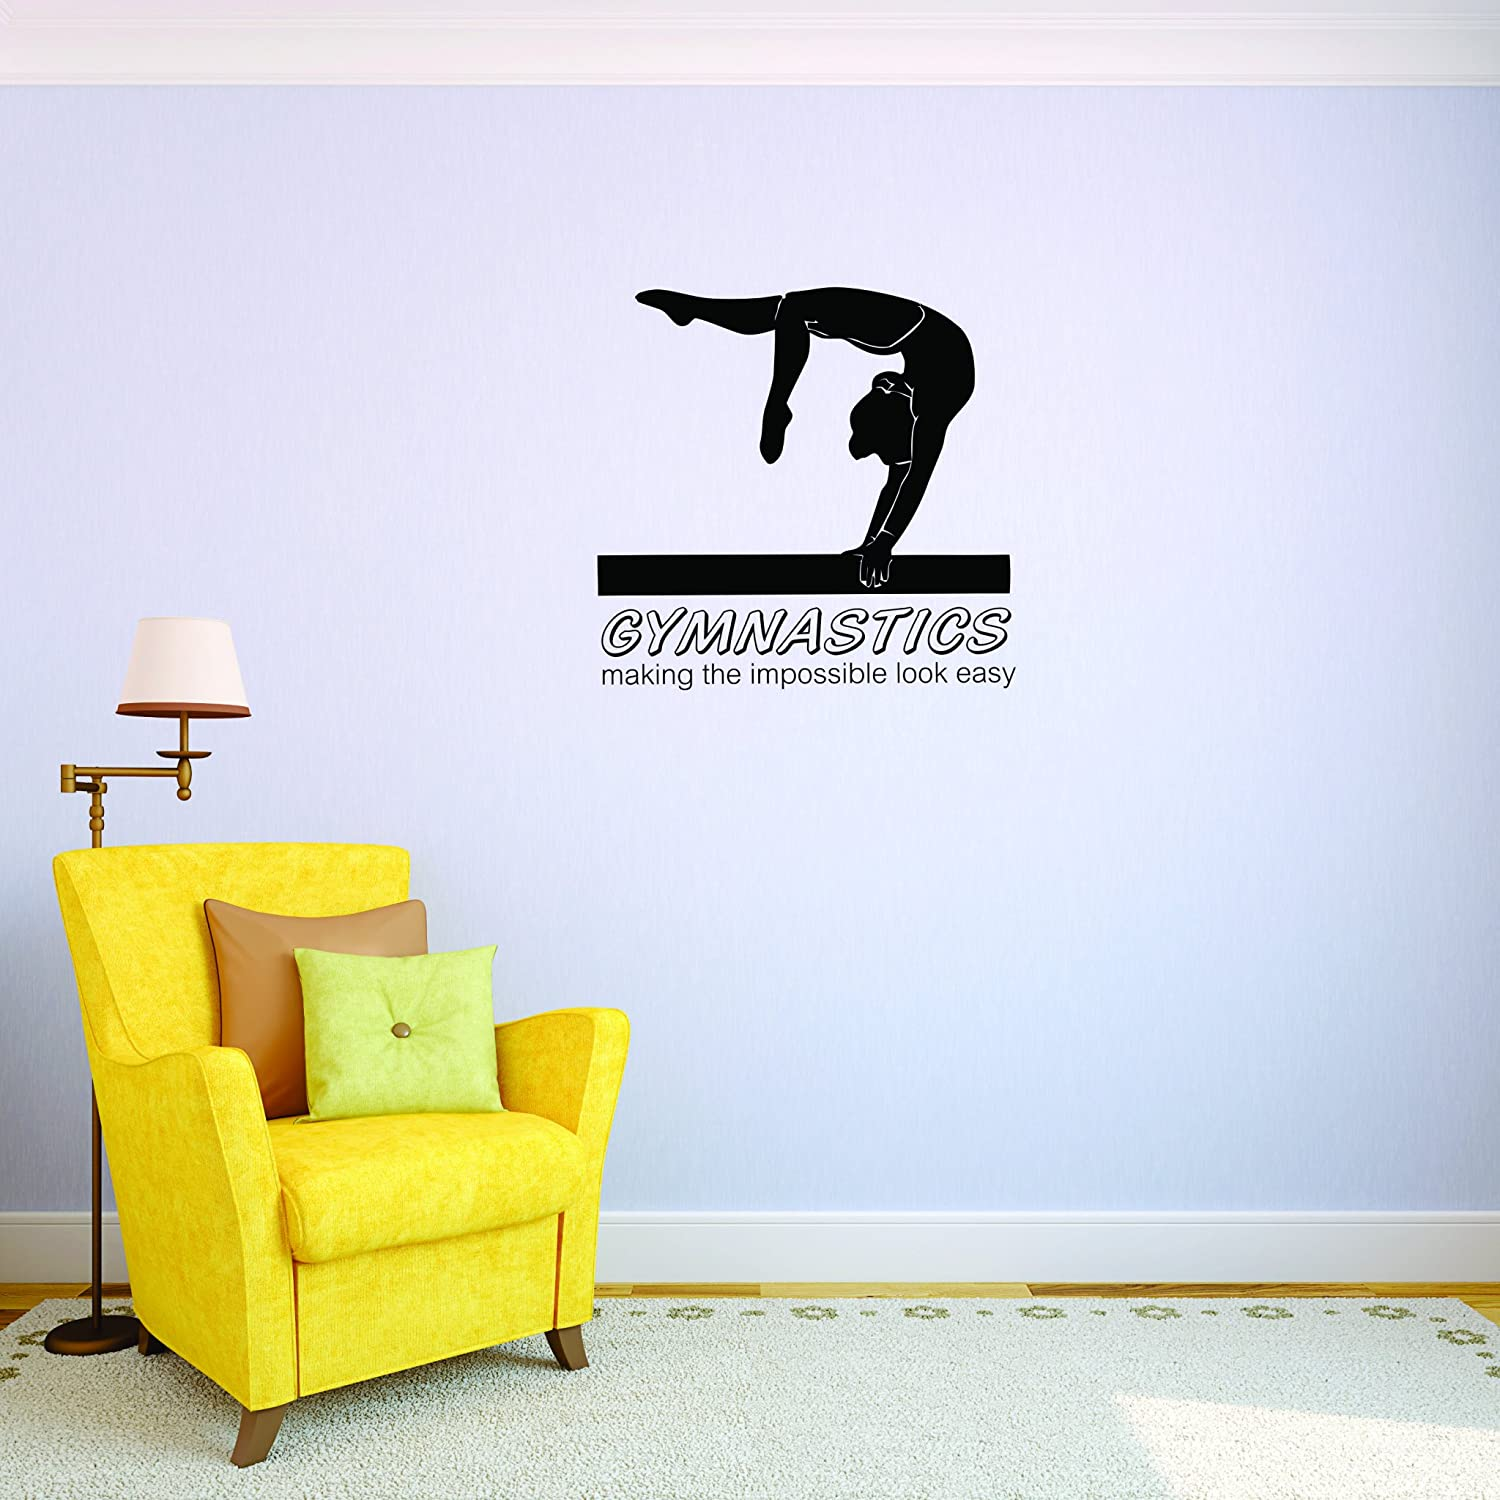 Design with Vinyl JER 2071 3 Hot New Decals Gymnastics Making The Impossible Look Easy Wall Art Size 20 Inches x 30 Inches Color Black 20 x 30